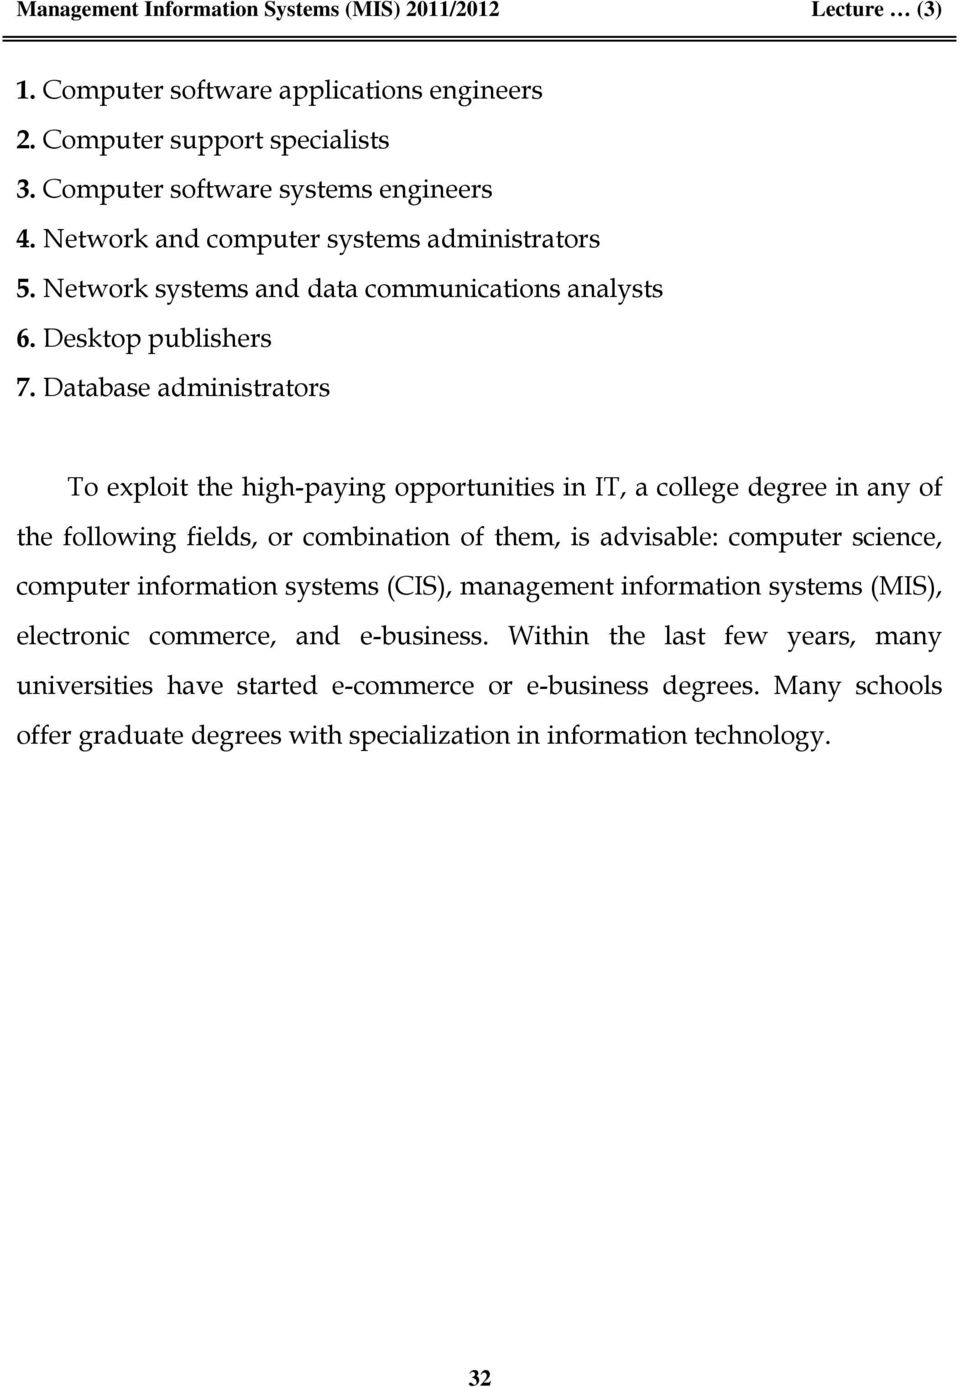 Database administrators To exploit the high-paying opportunities in IT, a college degree in any of the following fields, or combination of them, is advisable: computer